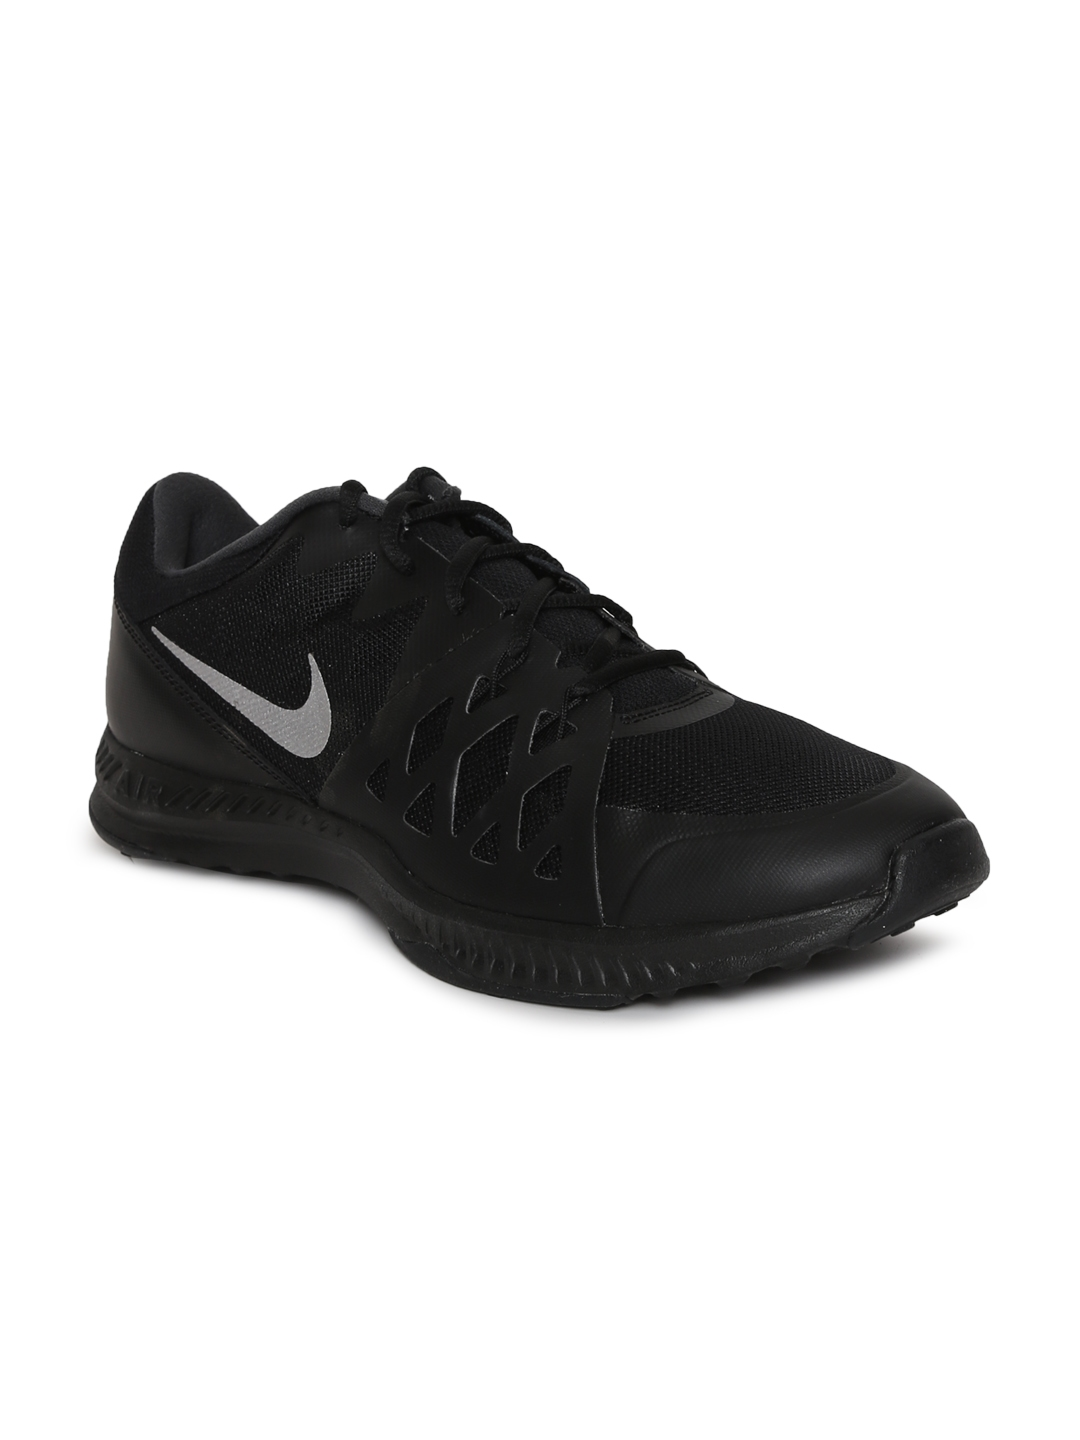 dfc9cfdf6a Buy Nike Men Black AIR EPIC SPEED TR II Leather Training Shoes ...